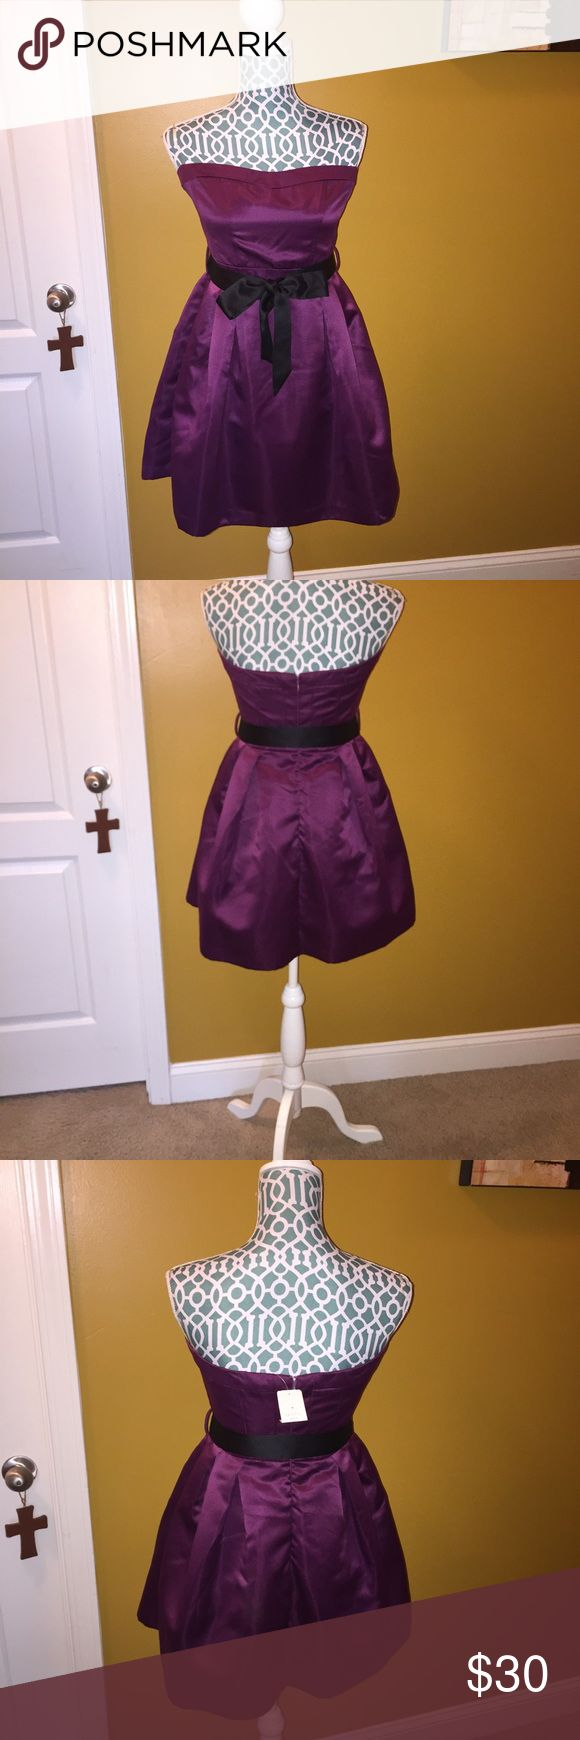 Formal Mini Dress Perfect for Middle School Dance or Prom Formal Mini Dress, Purple with black belt.   New with tag Dresses Mini